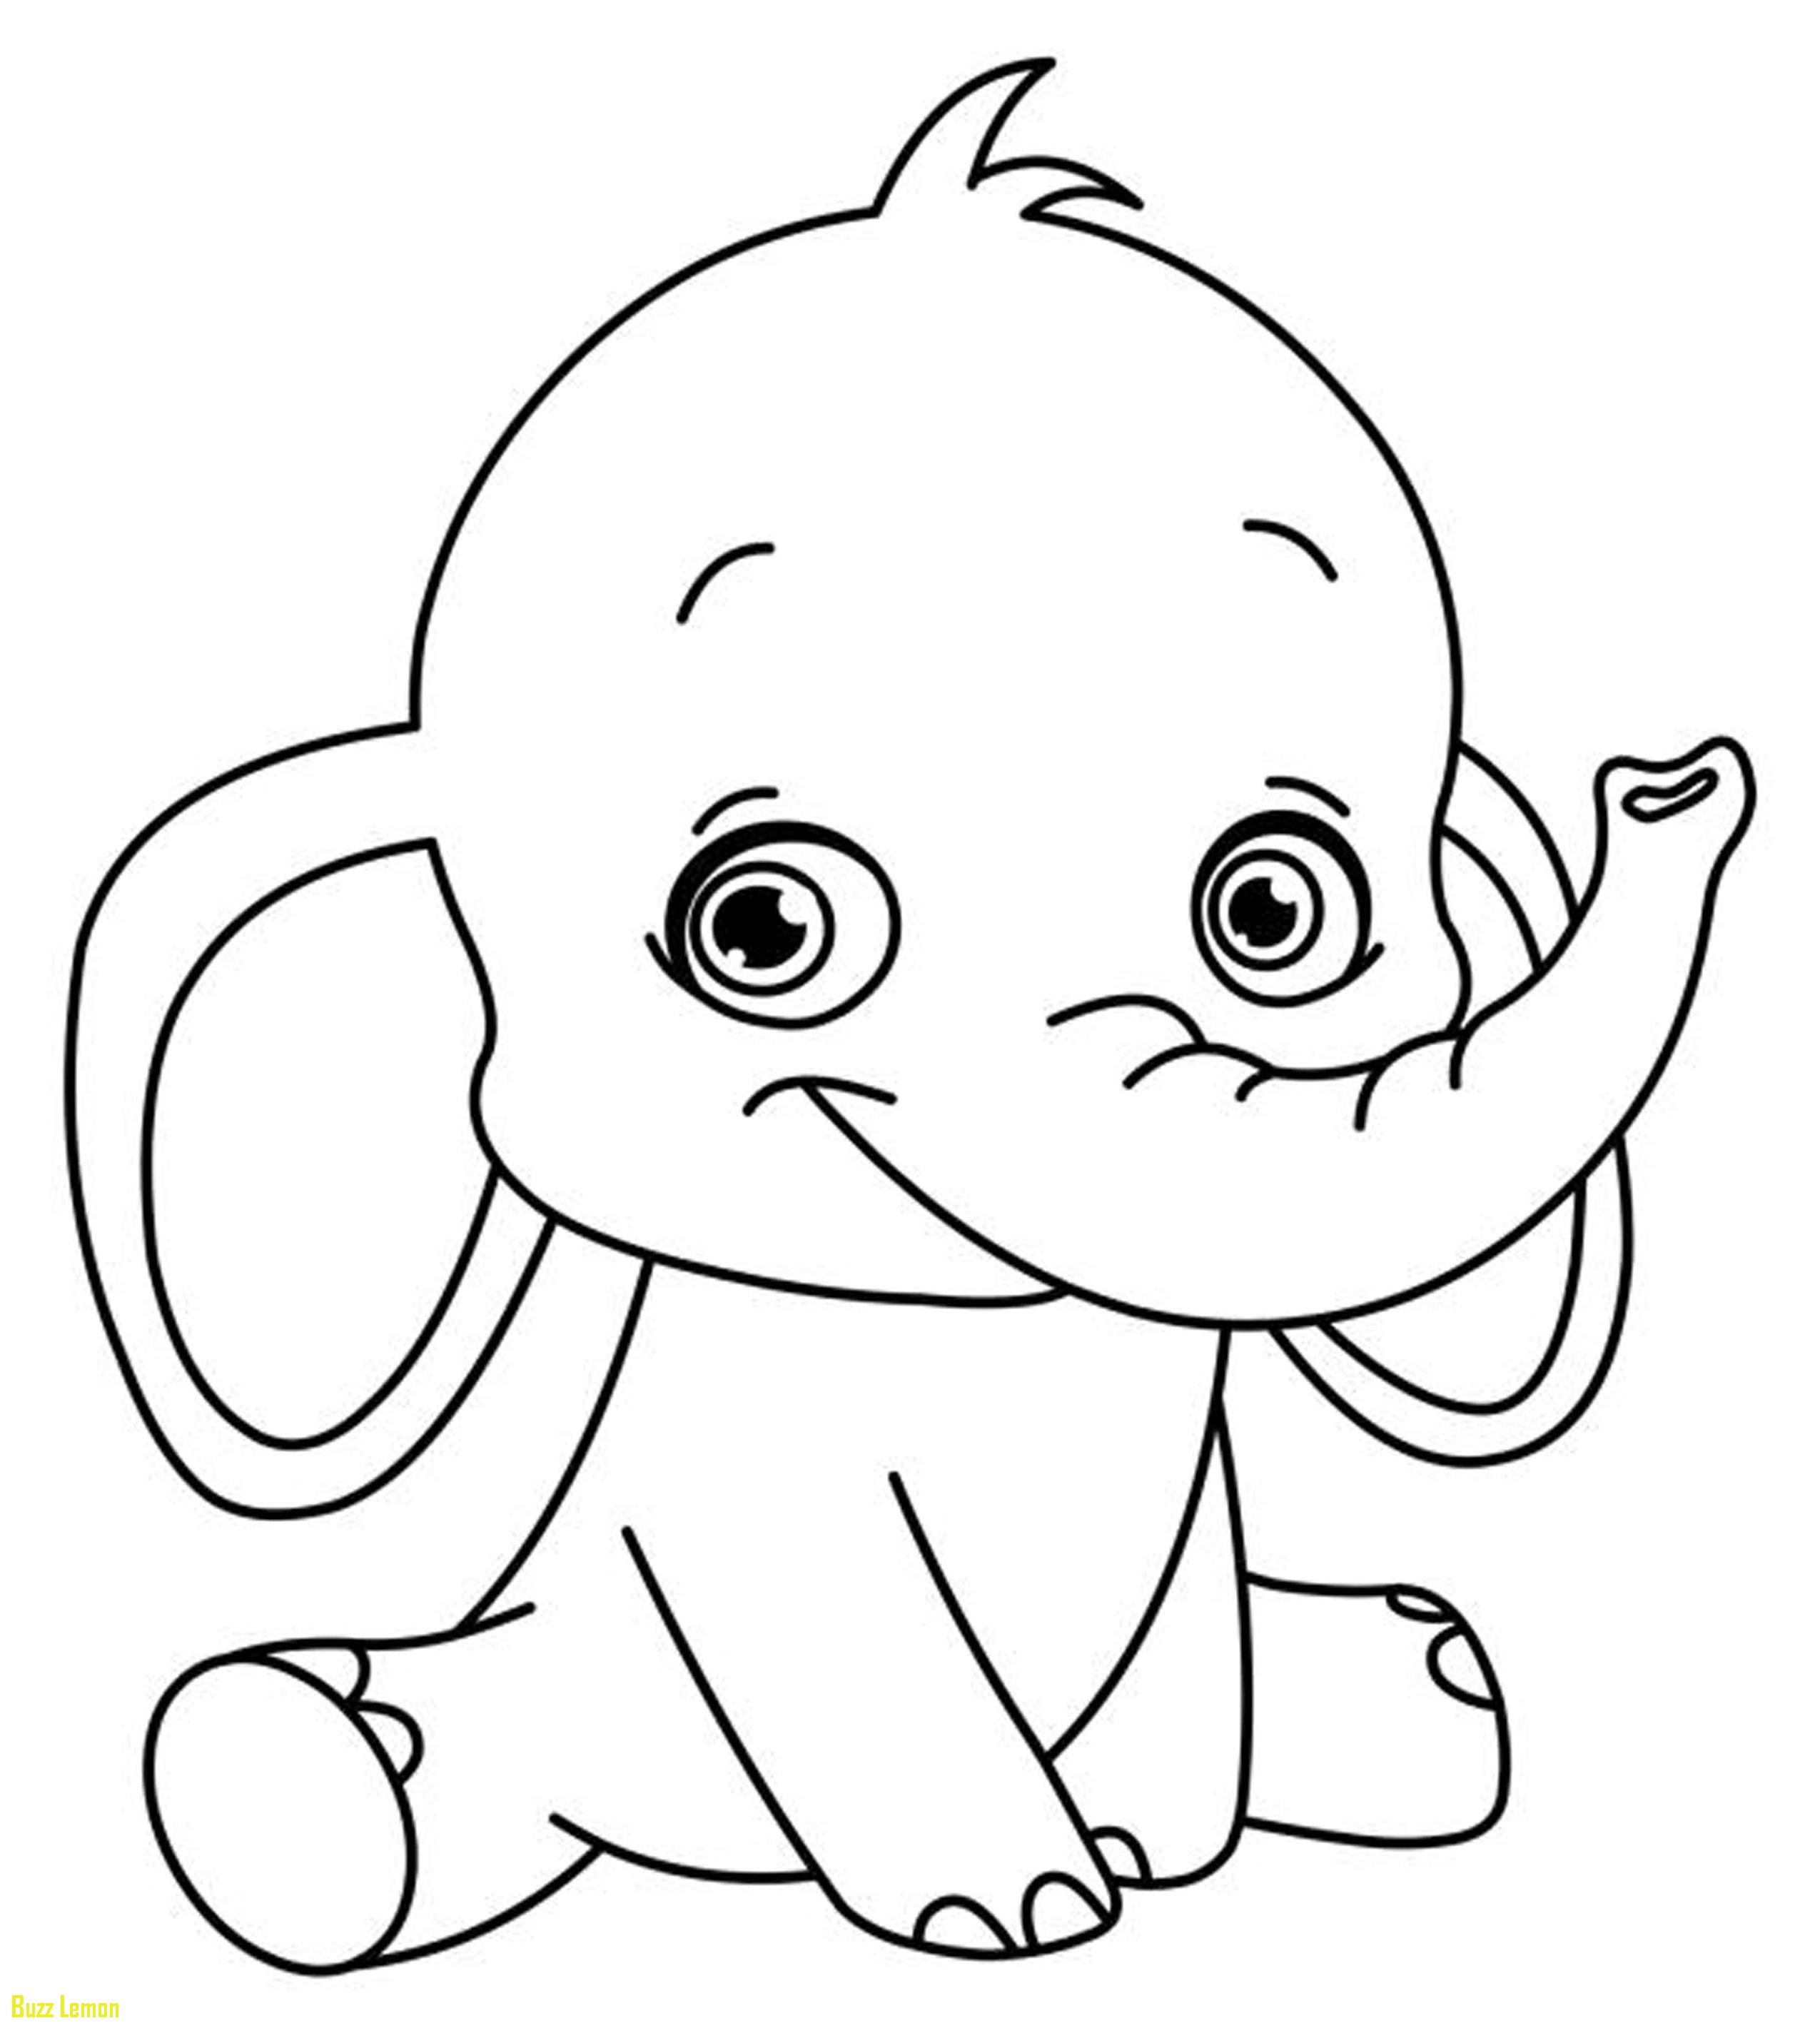 2550x2848 Colouring Stencils For Toddlers Unique Good Printable Kid Coloring